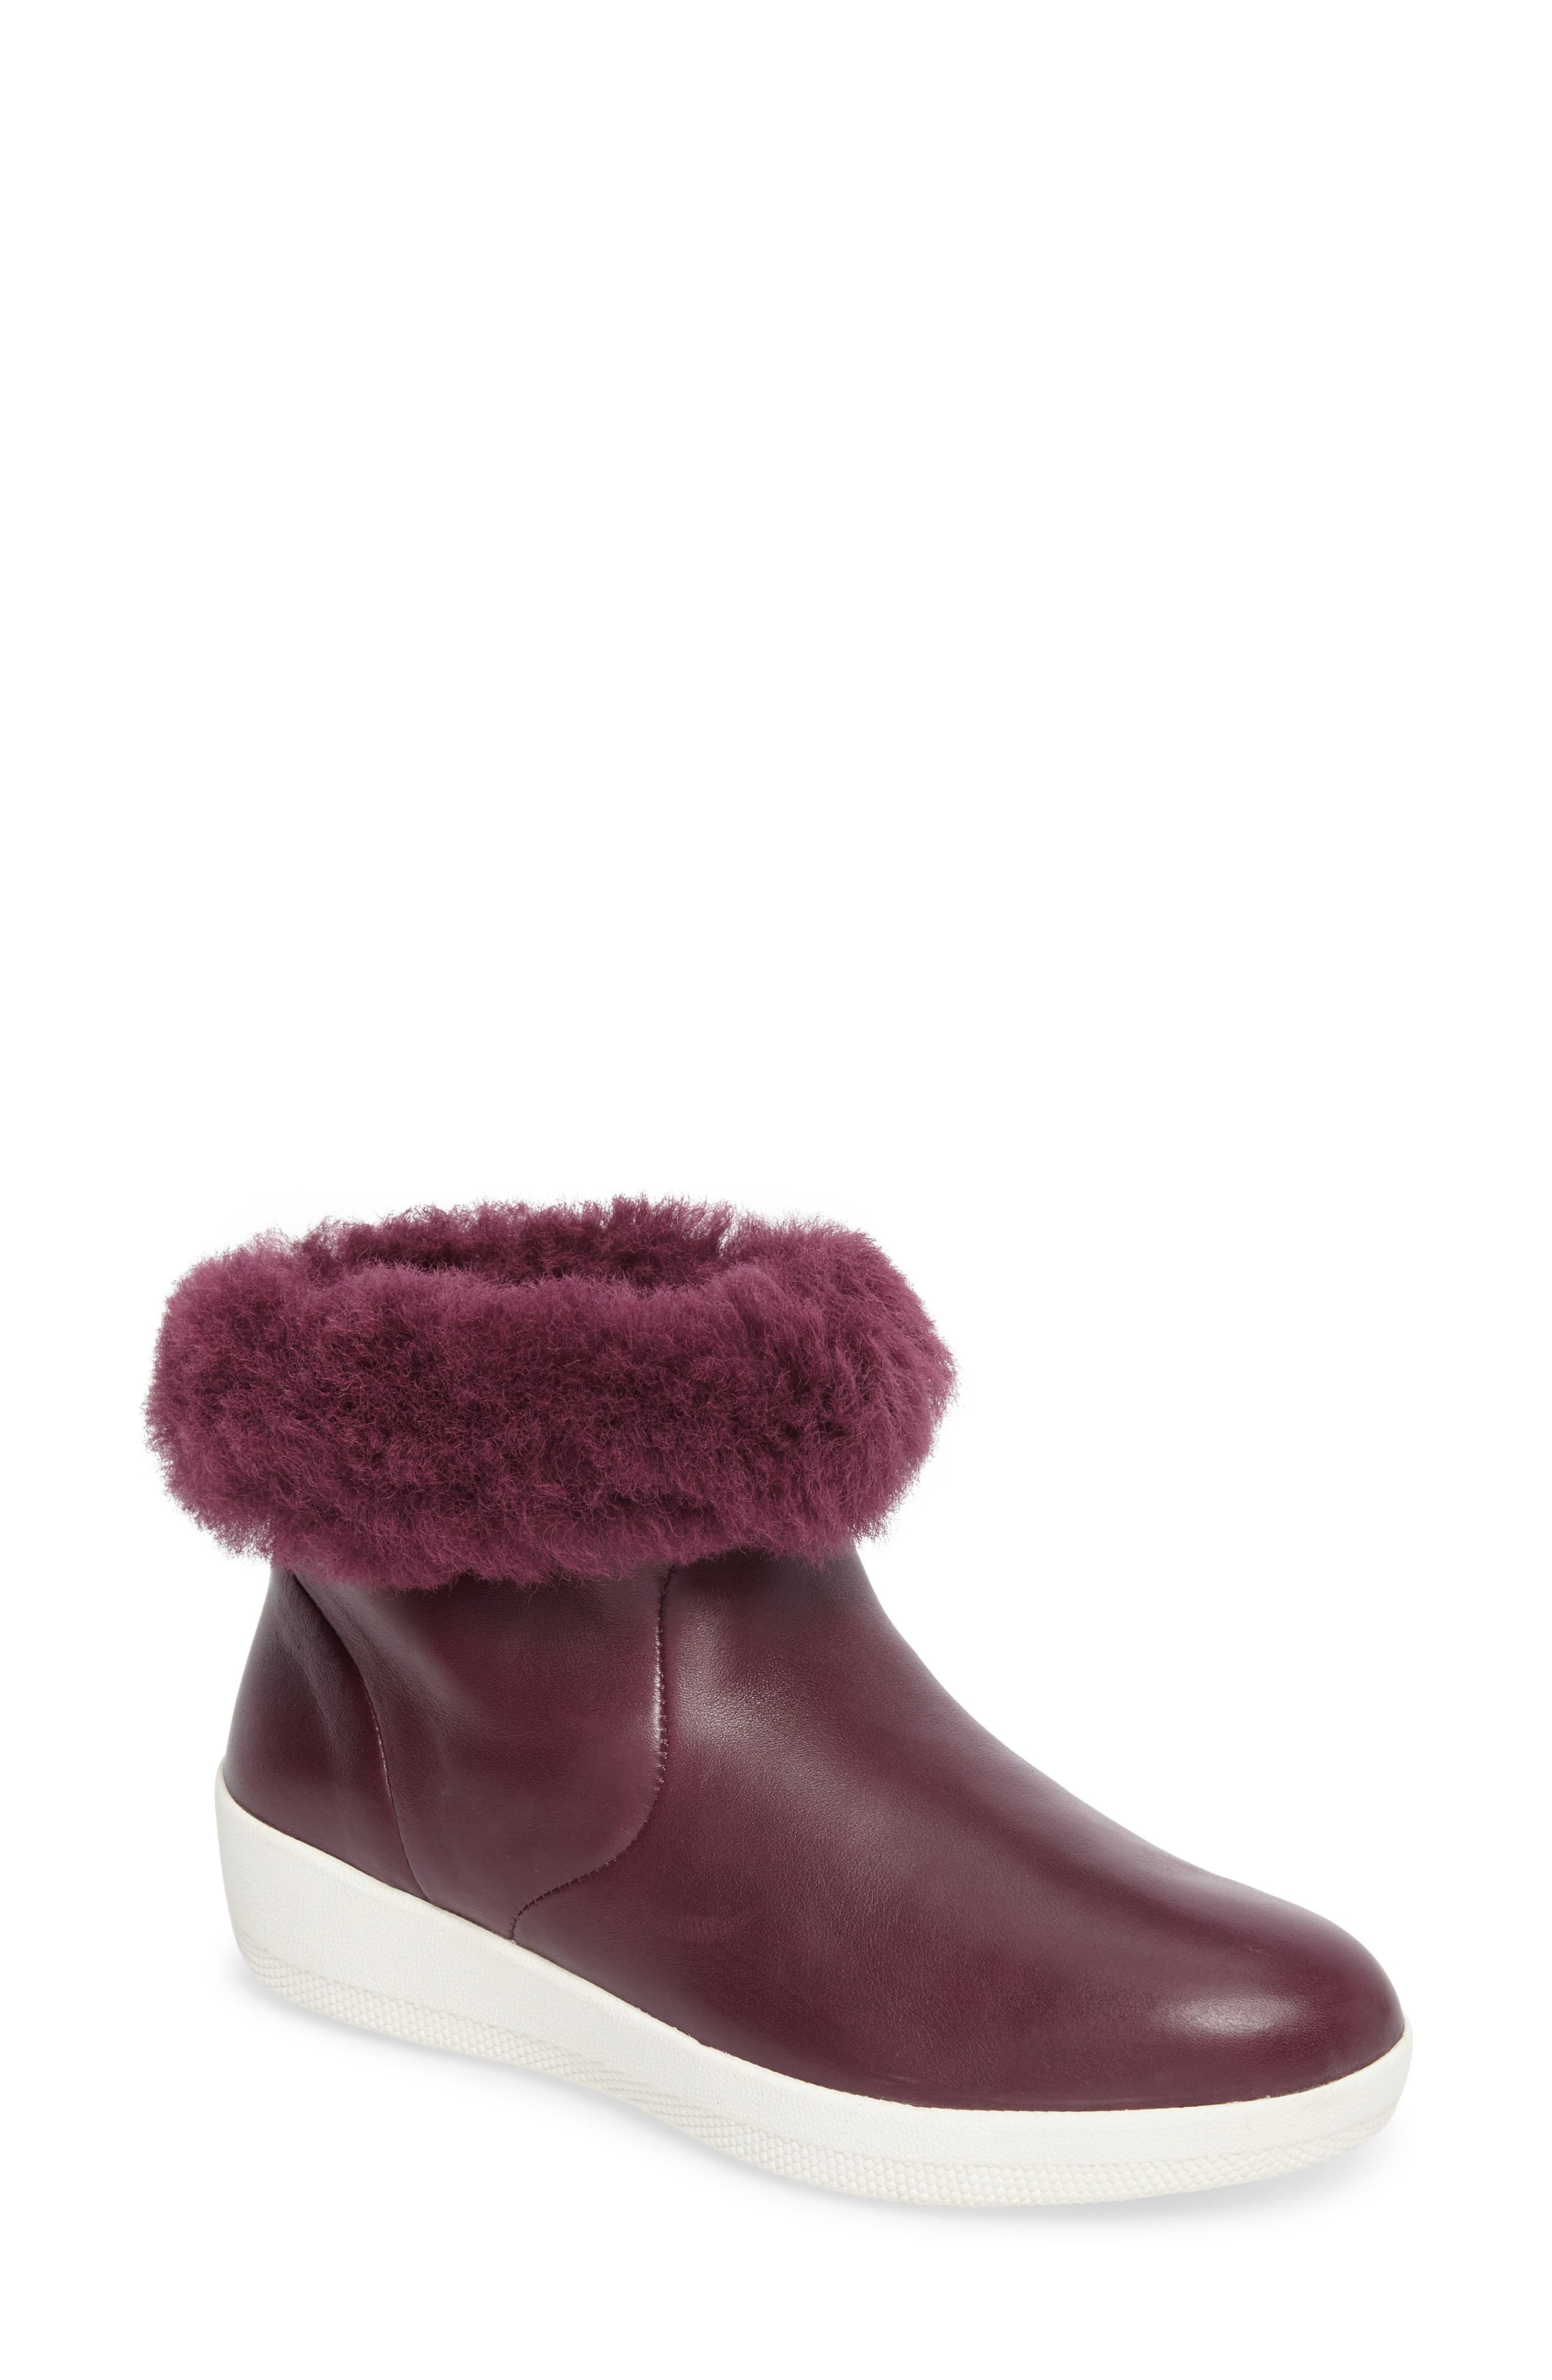 Skatebootie<sup>™</sup> with Genuine Shearling Cuff,                             Main thumbnail 1, color,                             Deep Plum